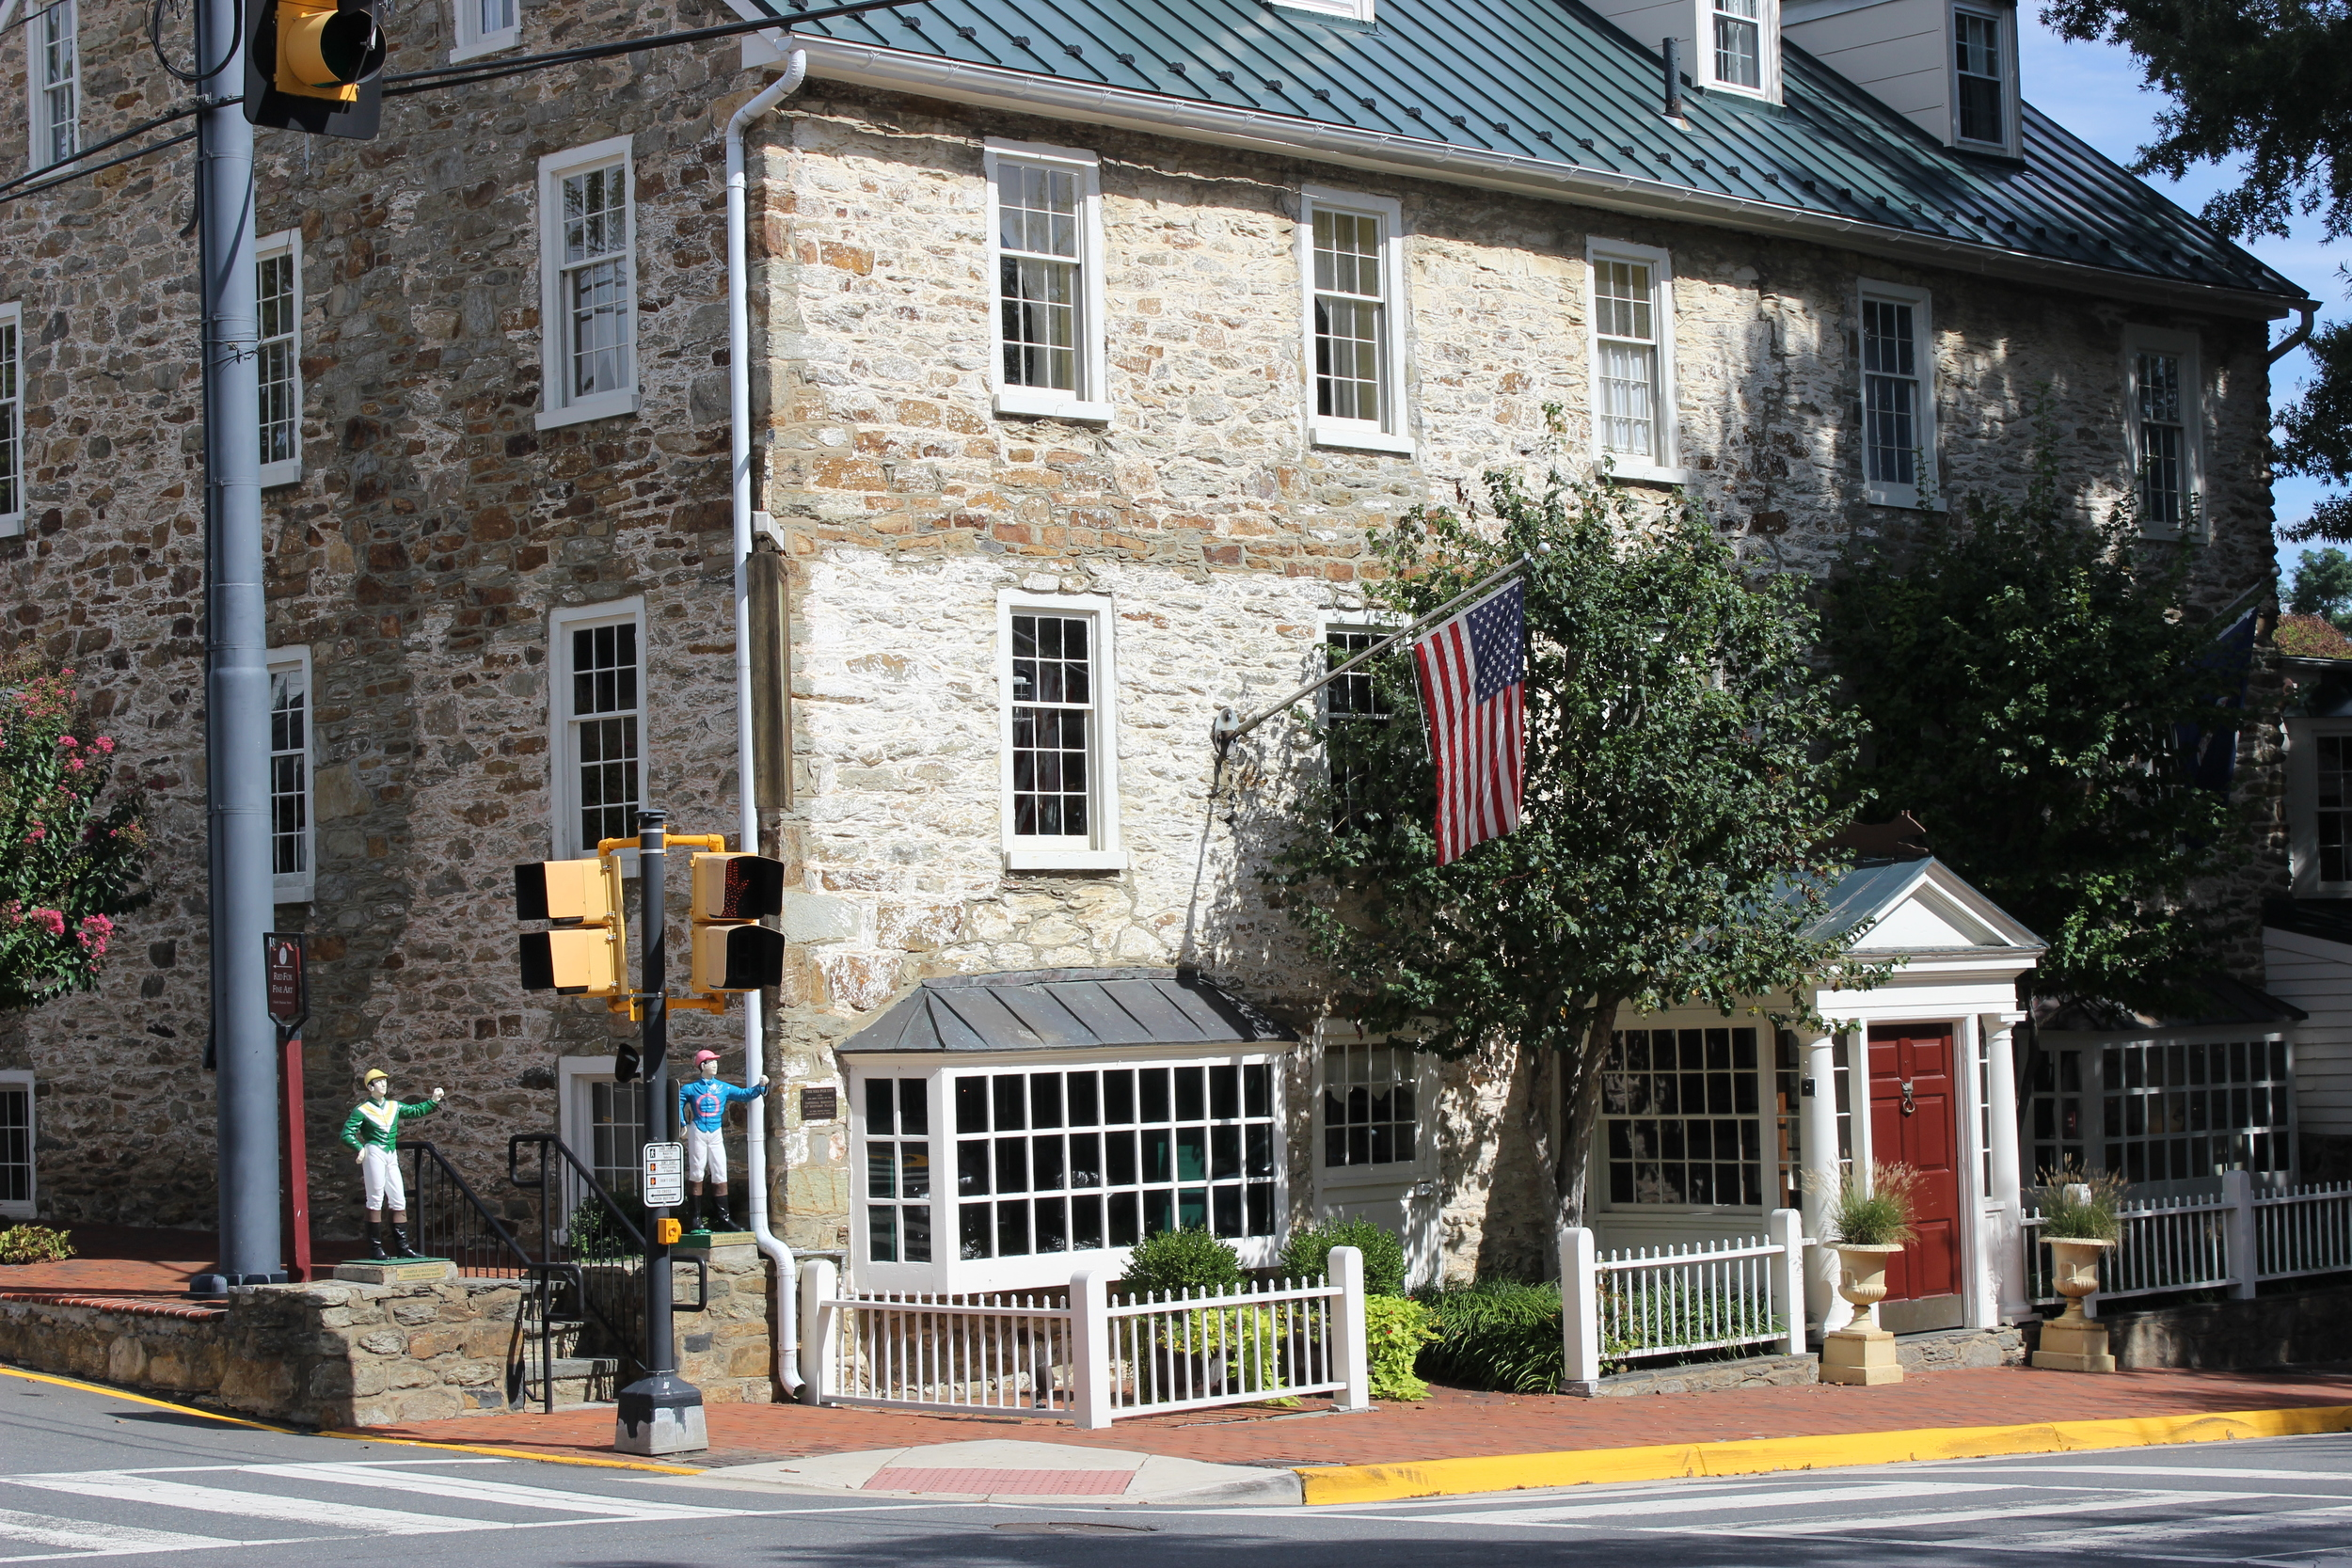 The Red Fox Inn is the nations oldest continually operating inn.